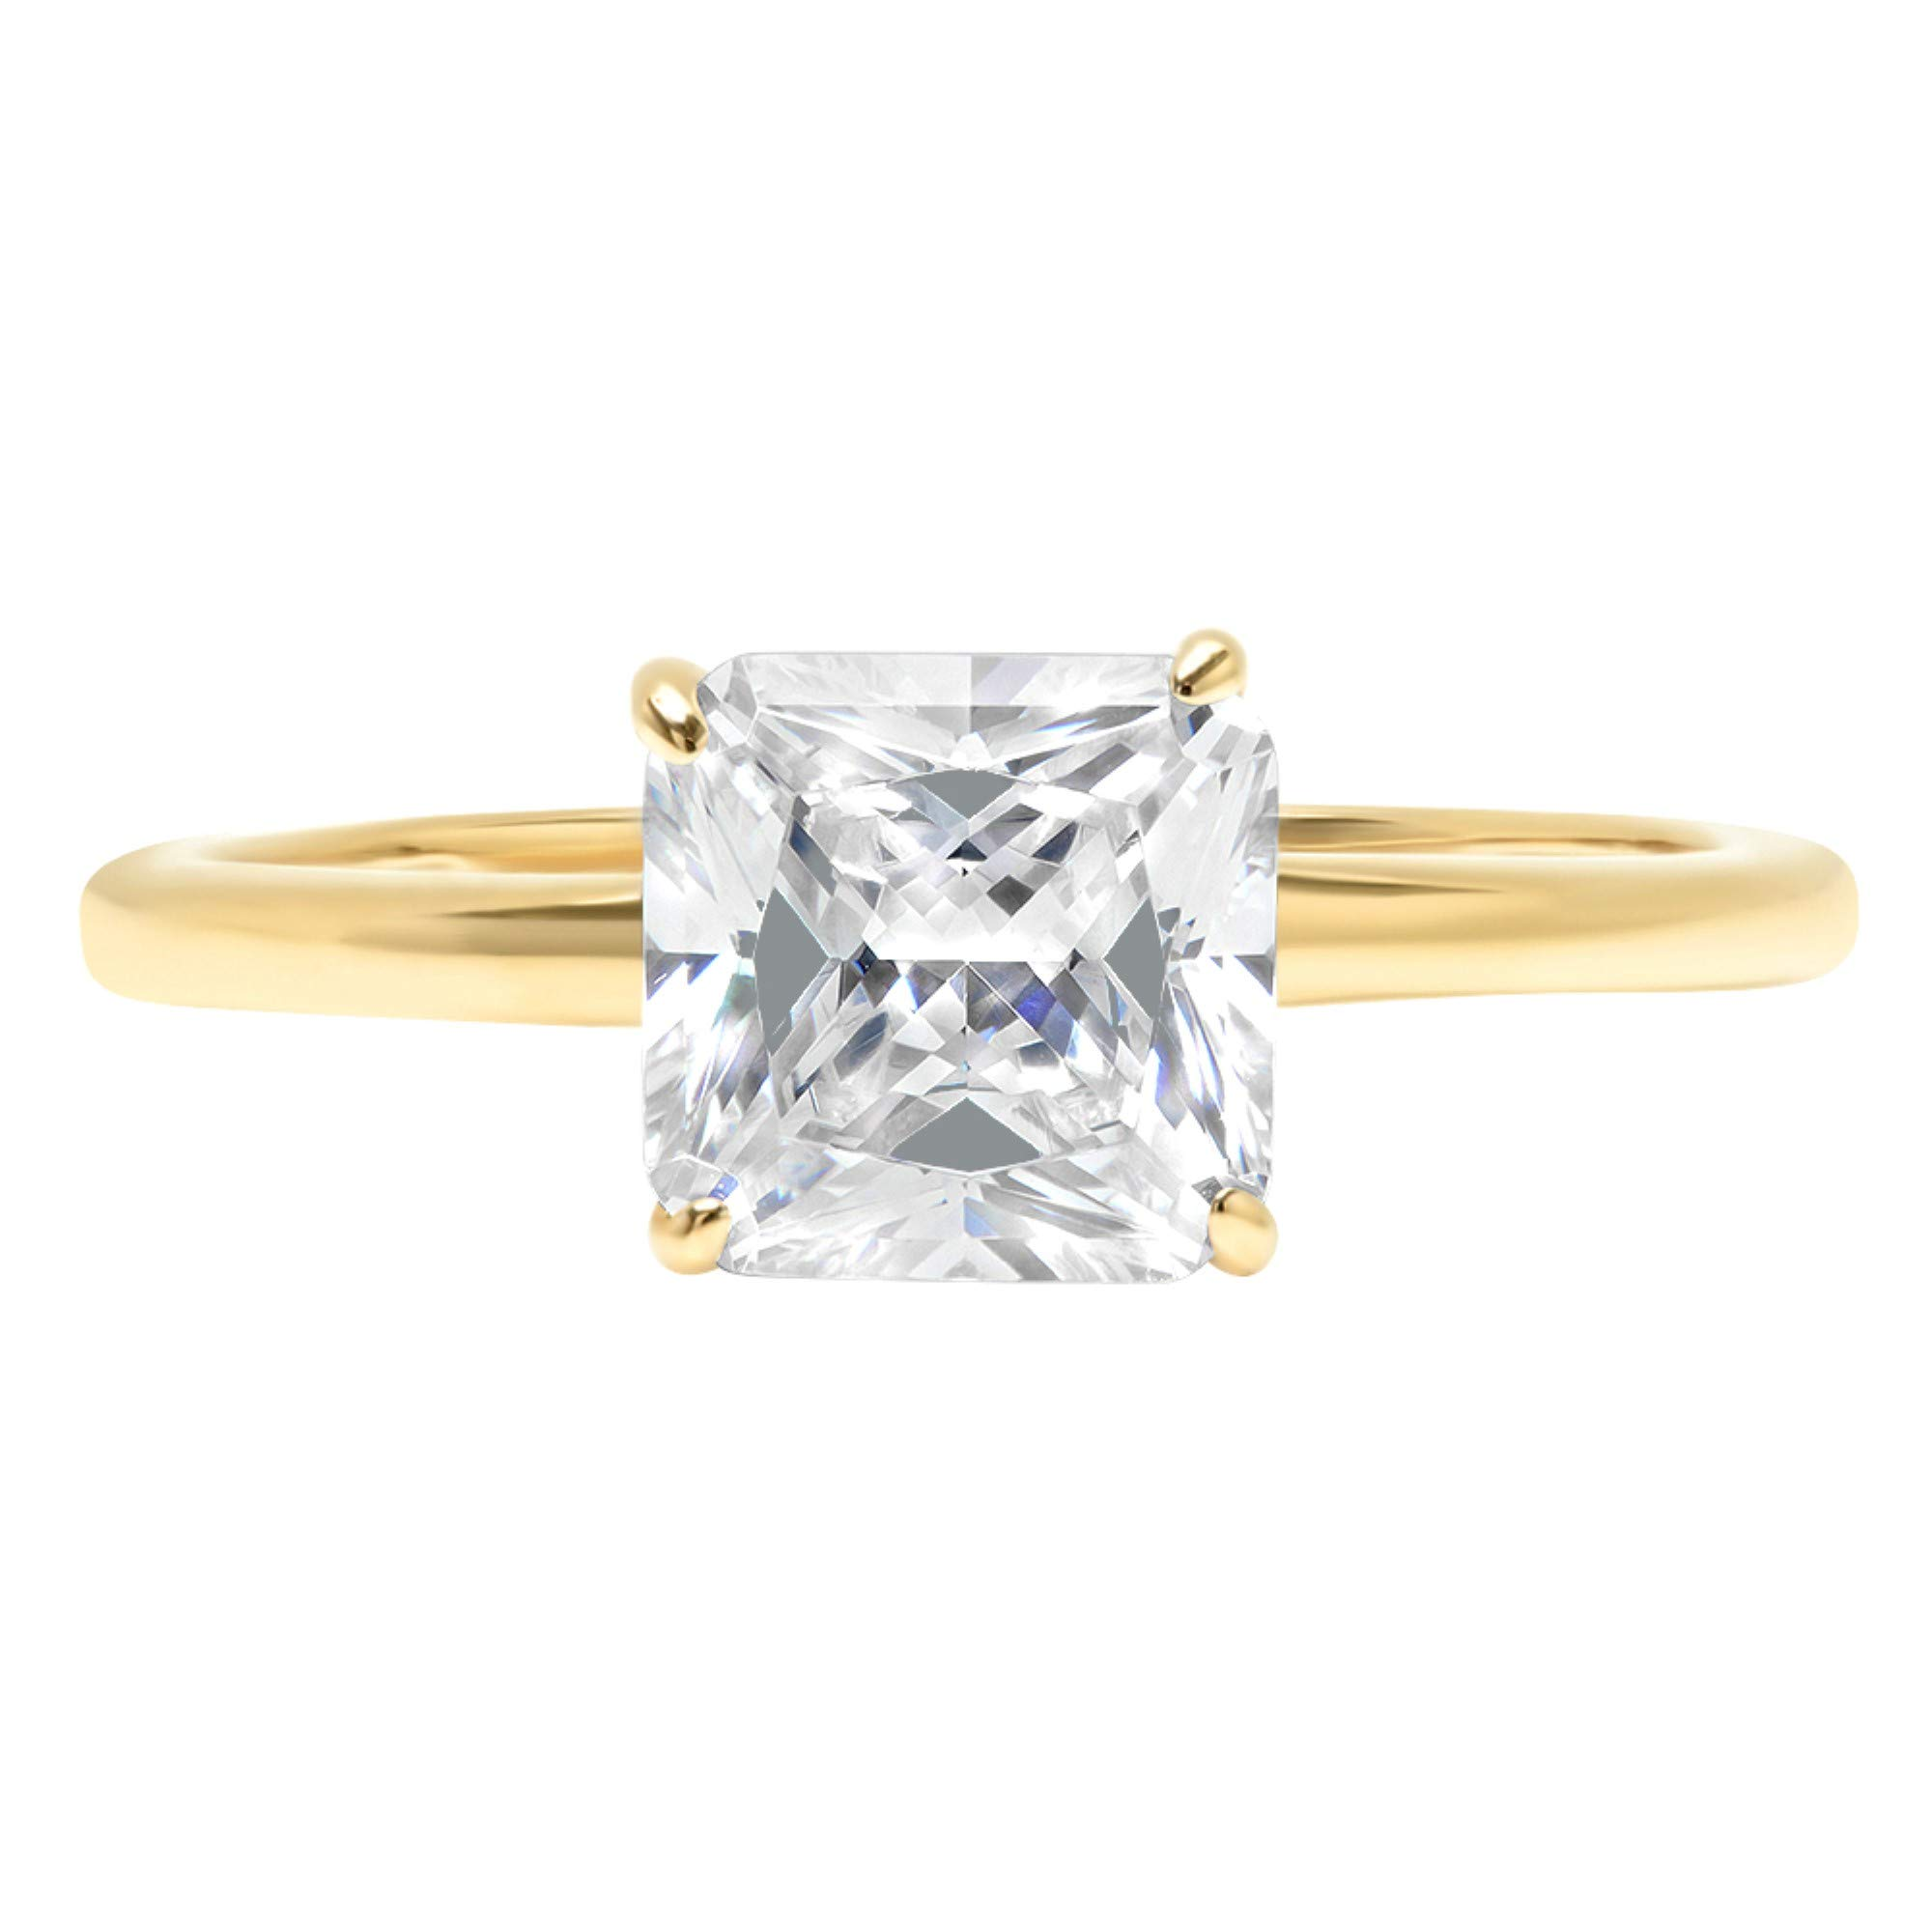 1.9ct Brilliant Asscher Cut Solitaire Highest Quality Lab Created White Sapphire Ideal VVS1 D 4-Prong Engagement Wedding Bridal Promise Anniversary Ring Solid Real 14k Yellow Gold for Women